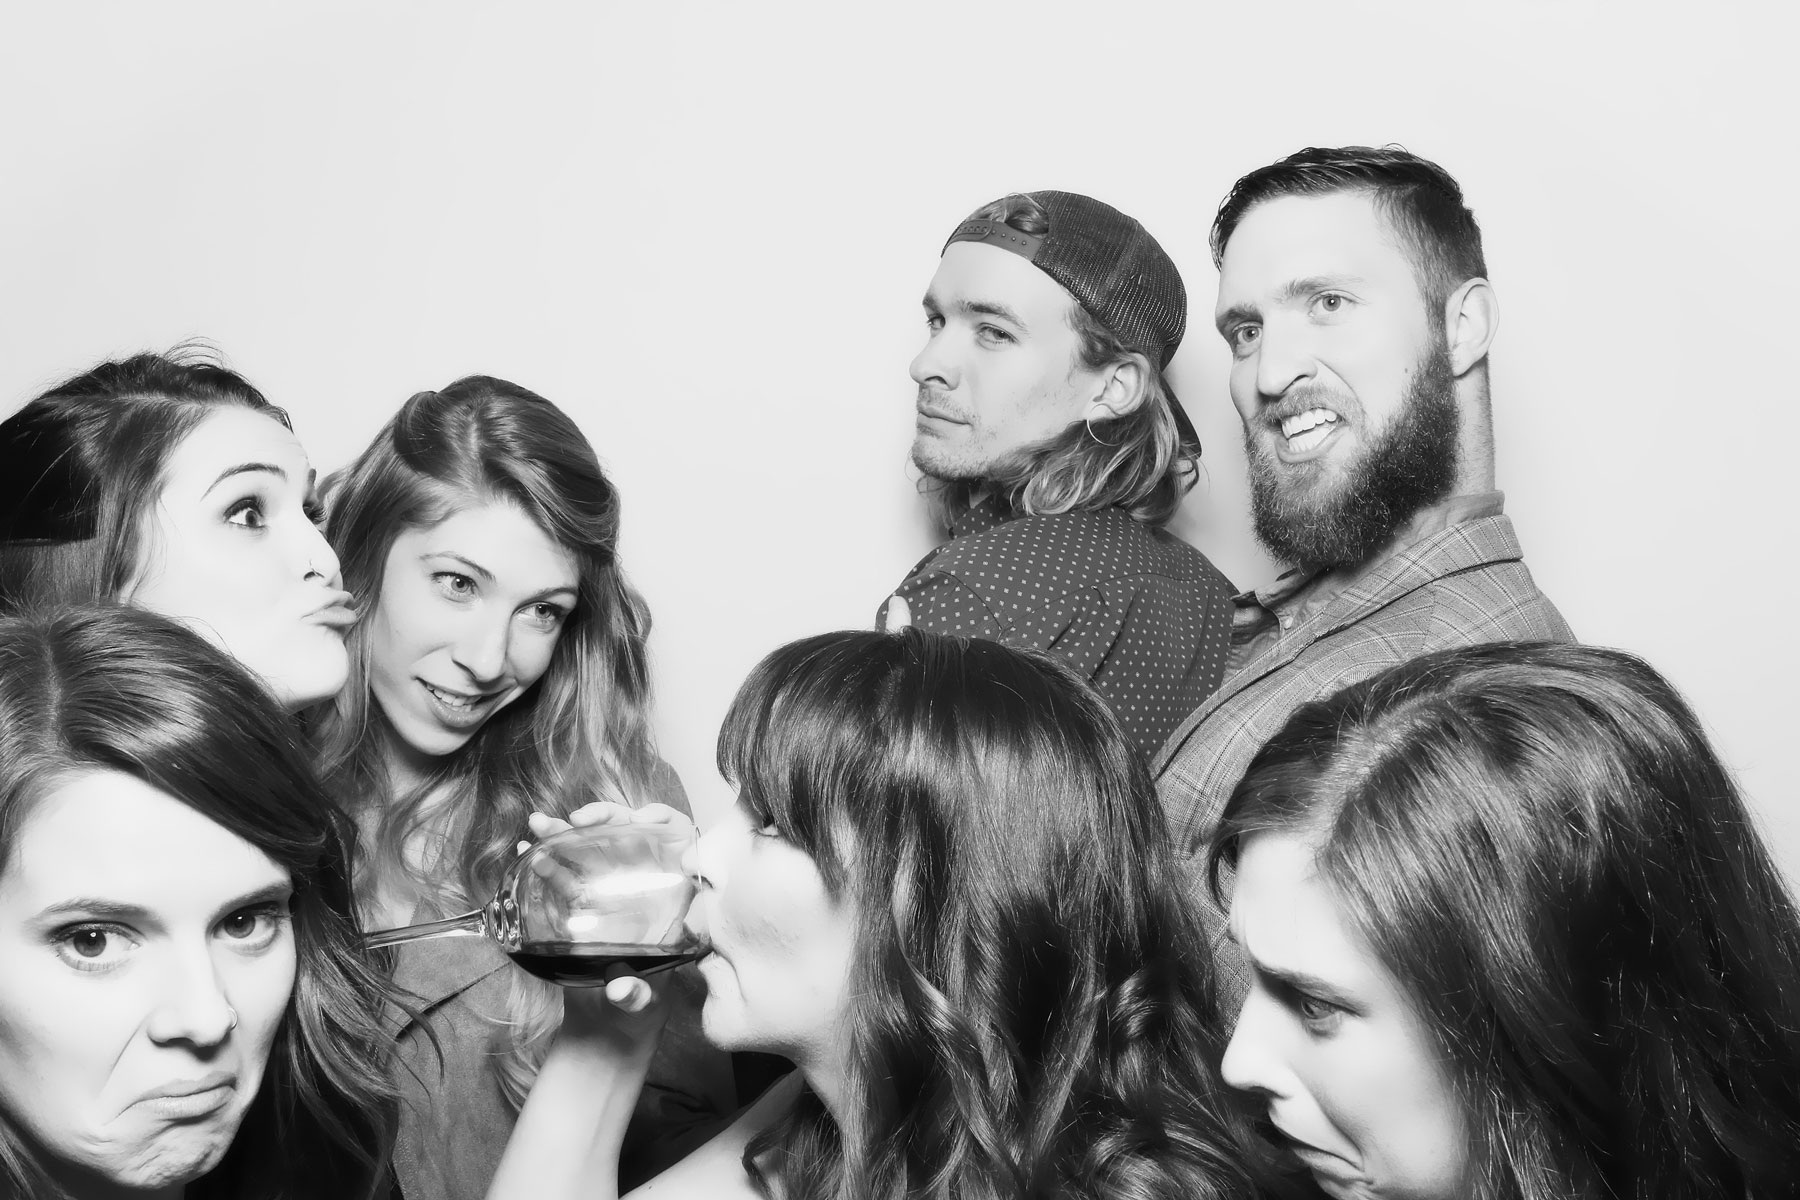 Group photo booth picture